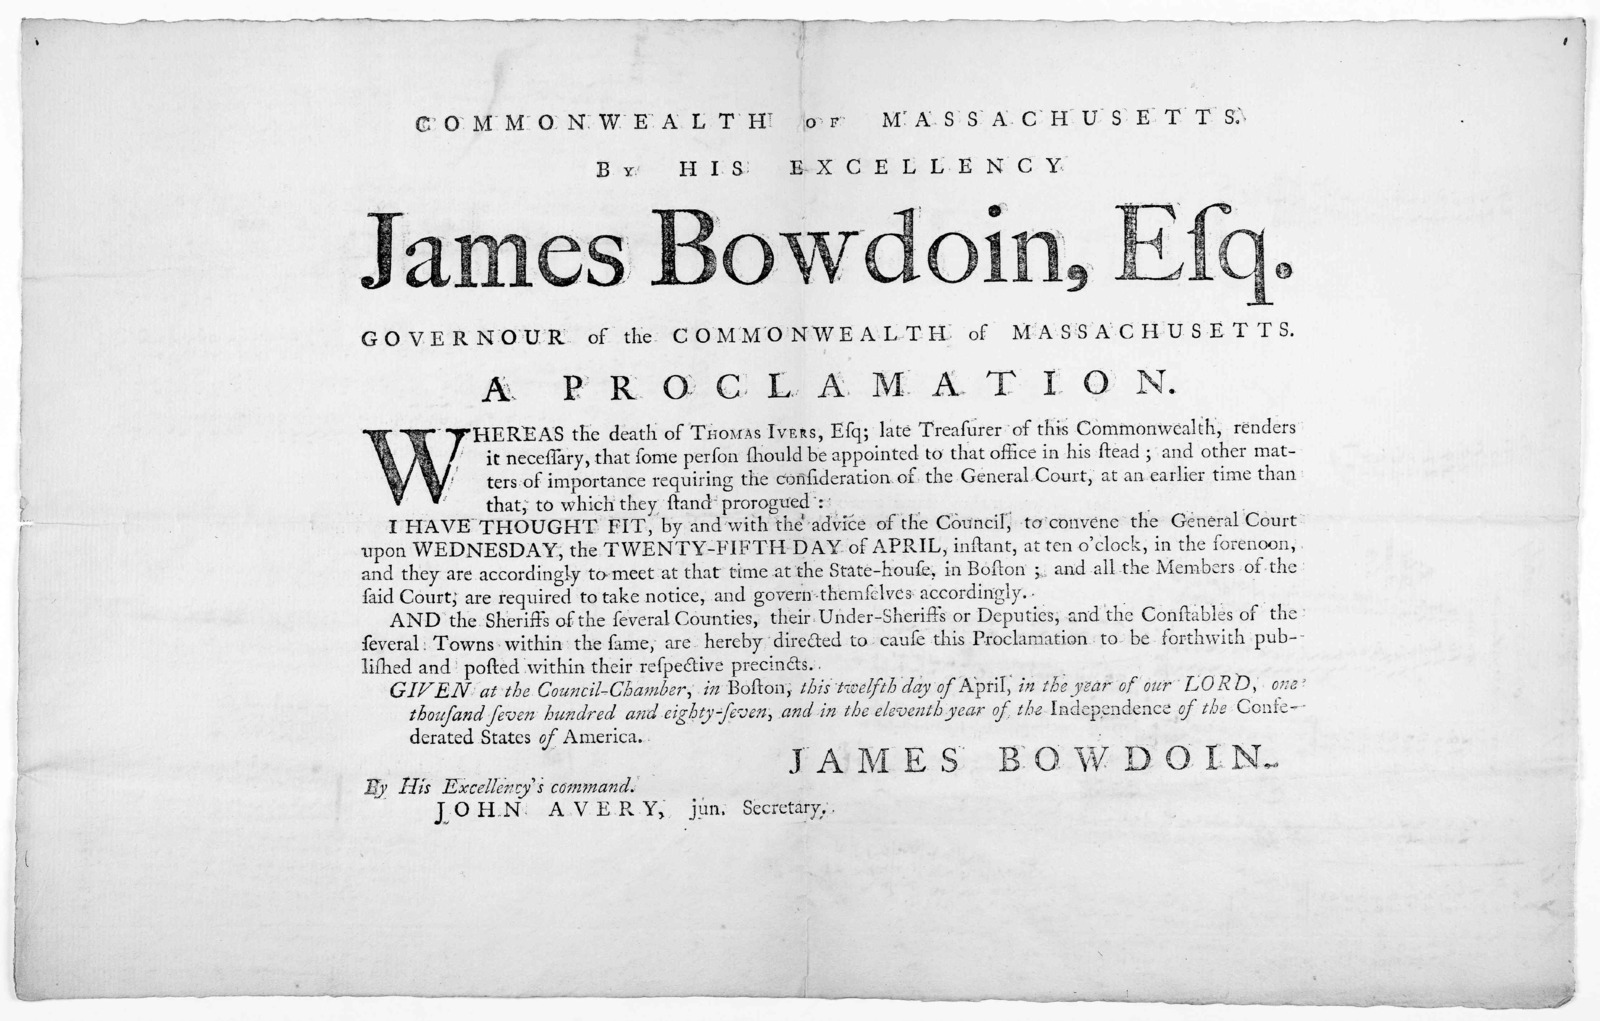 Commonwealth of Massachusetts. By his excellency James Bowdoin, Esq. Governour of the Commonwealth of Massachusetts. A proclamation. Whereas the death of Thomas Ivers, Esq. late treasurer of this Commonwealth, renders it necessary, that some per